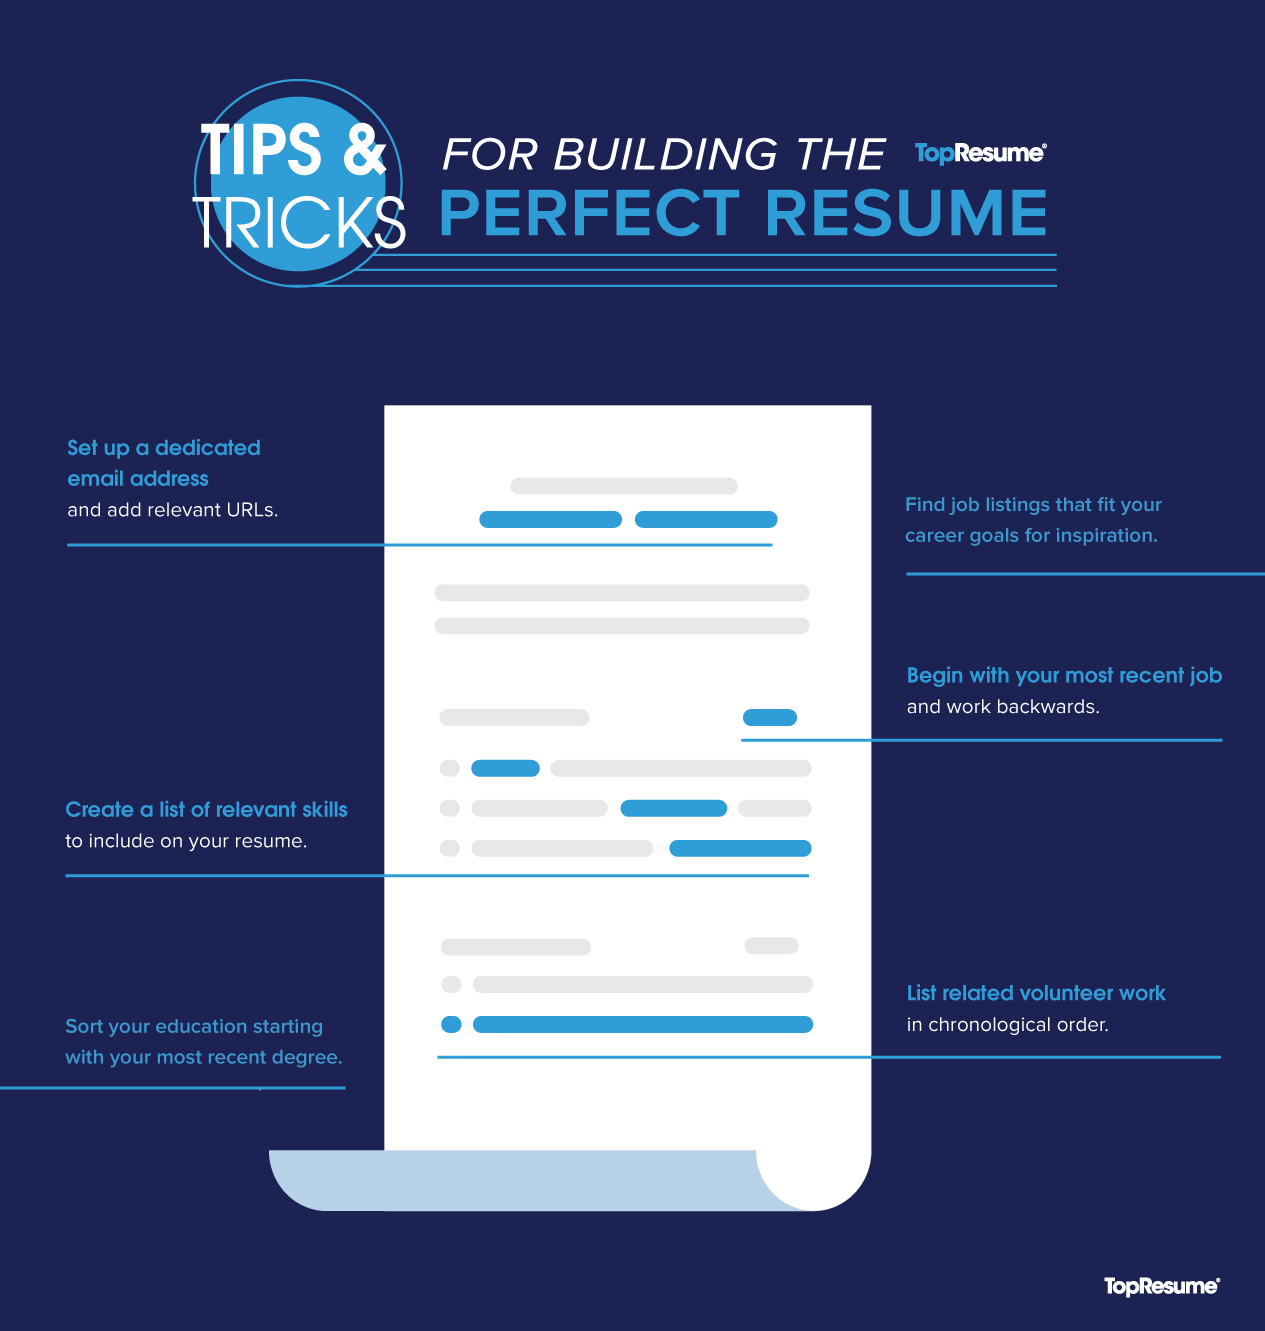 11 Steps To Writing The Perfect Resume